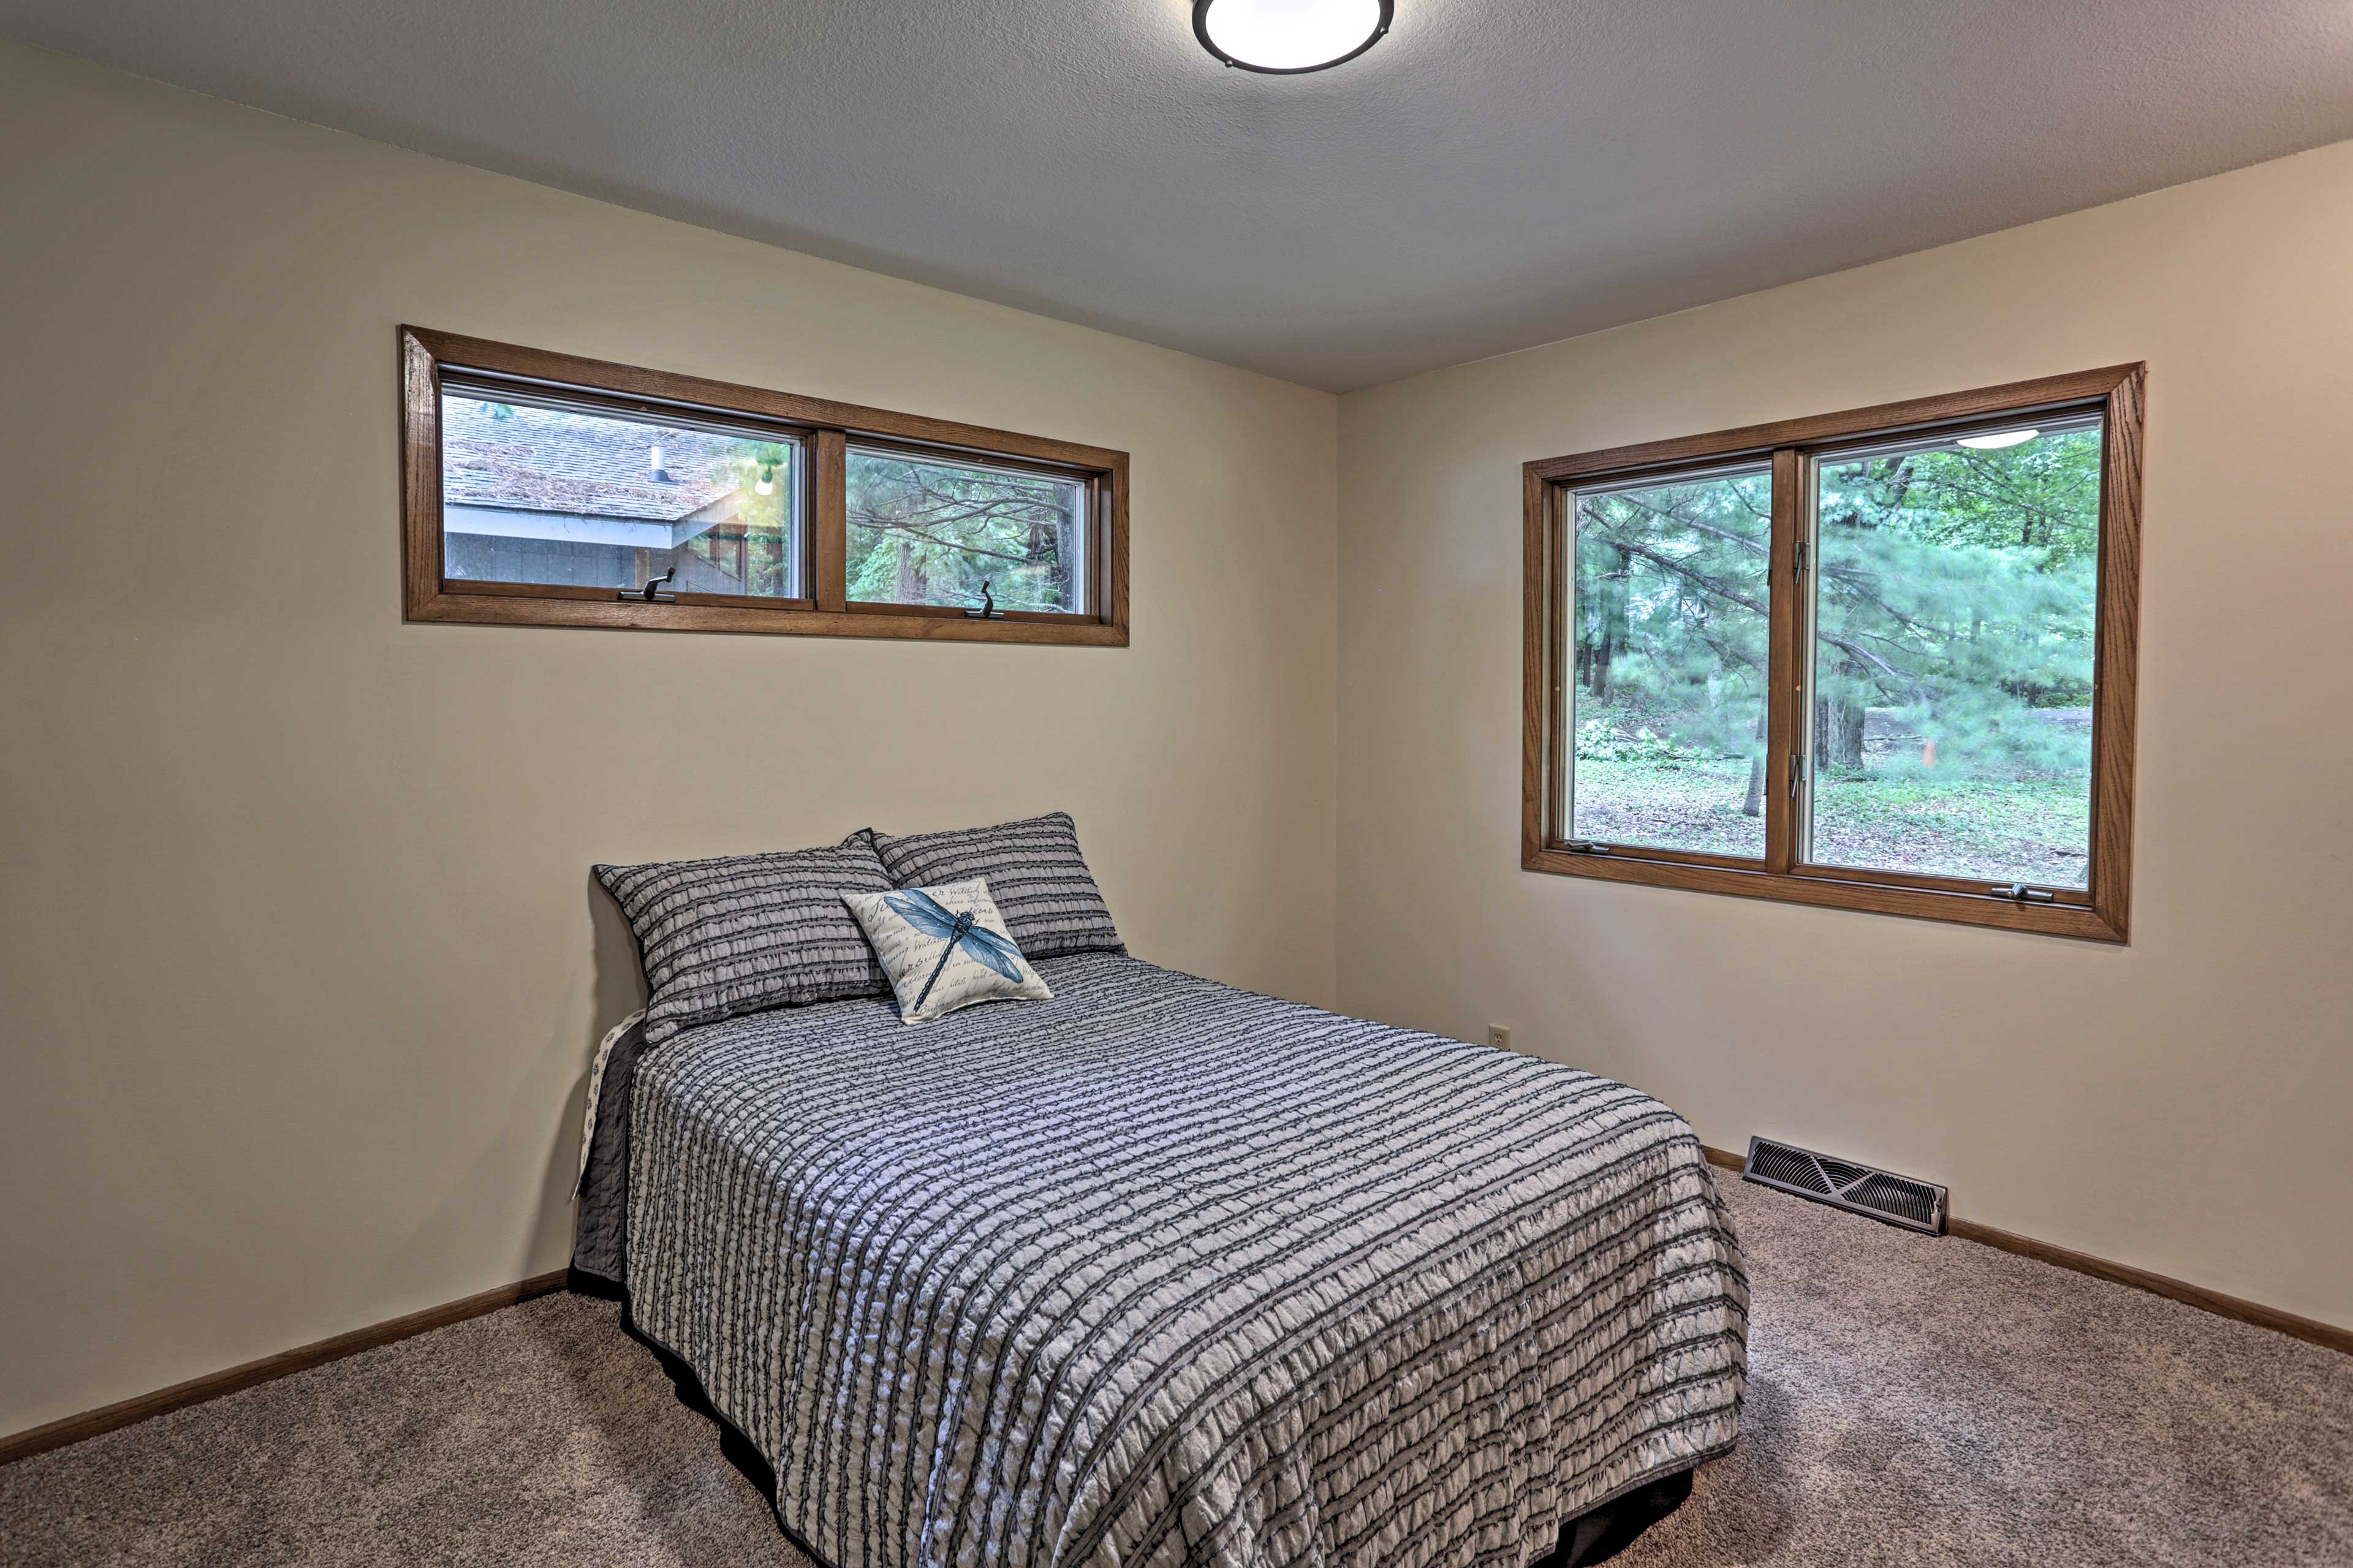 This second bedroom offers wooded views from the full bed.